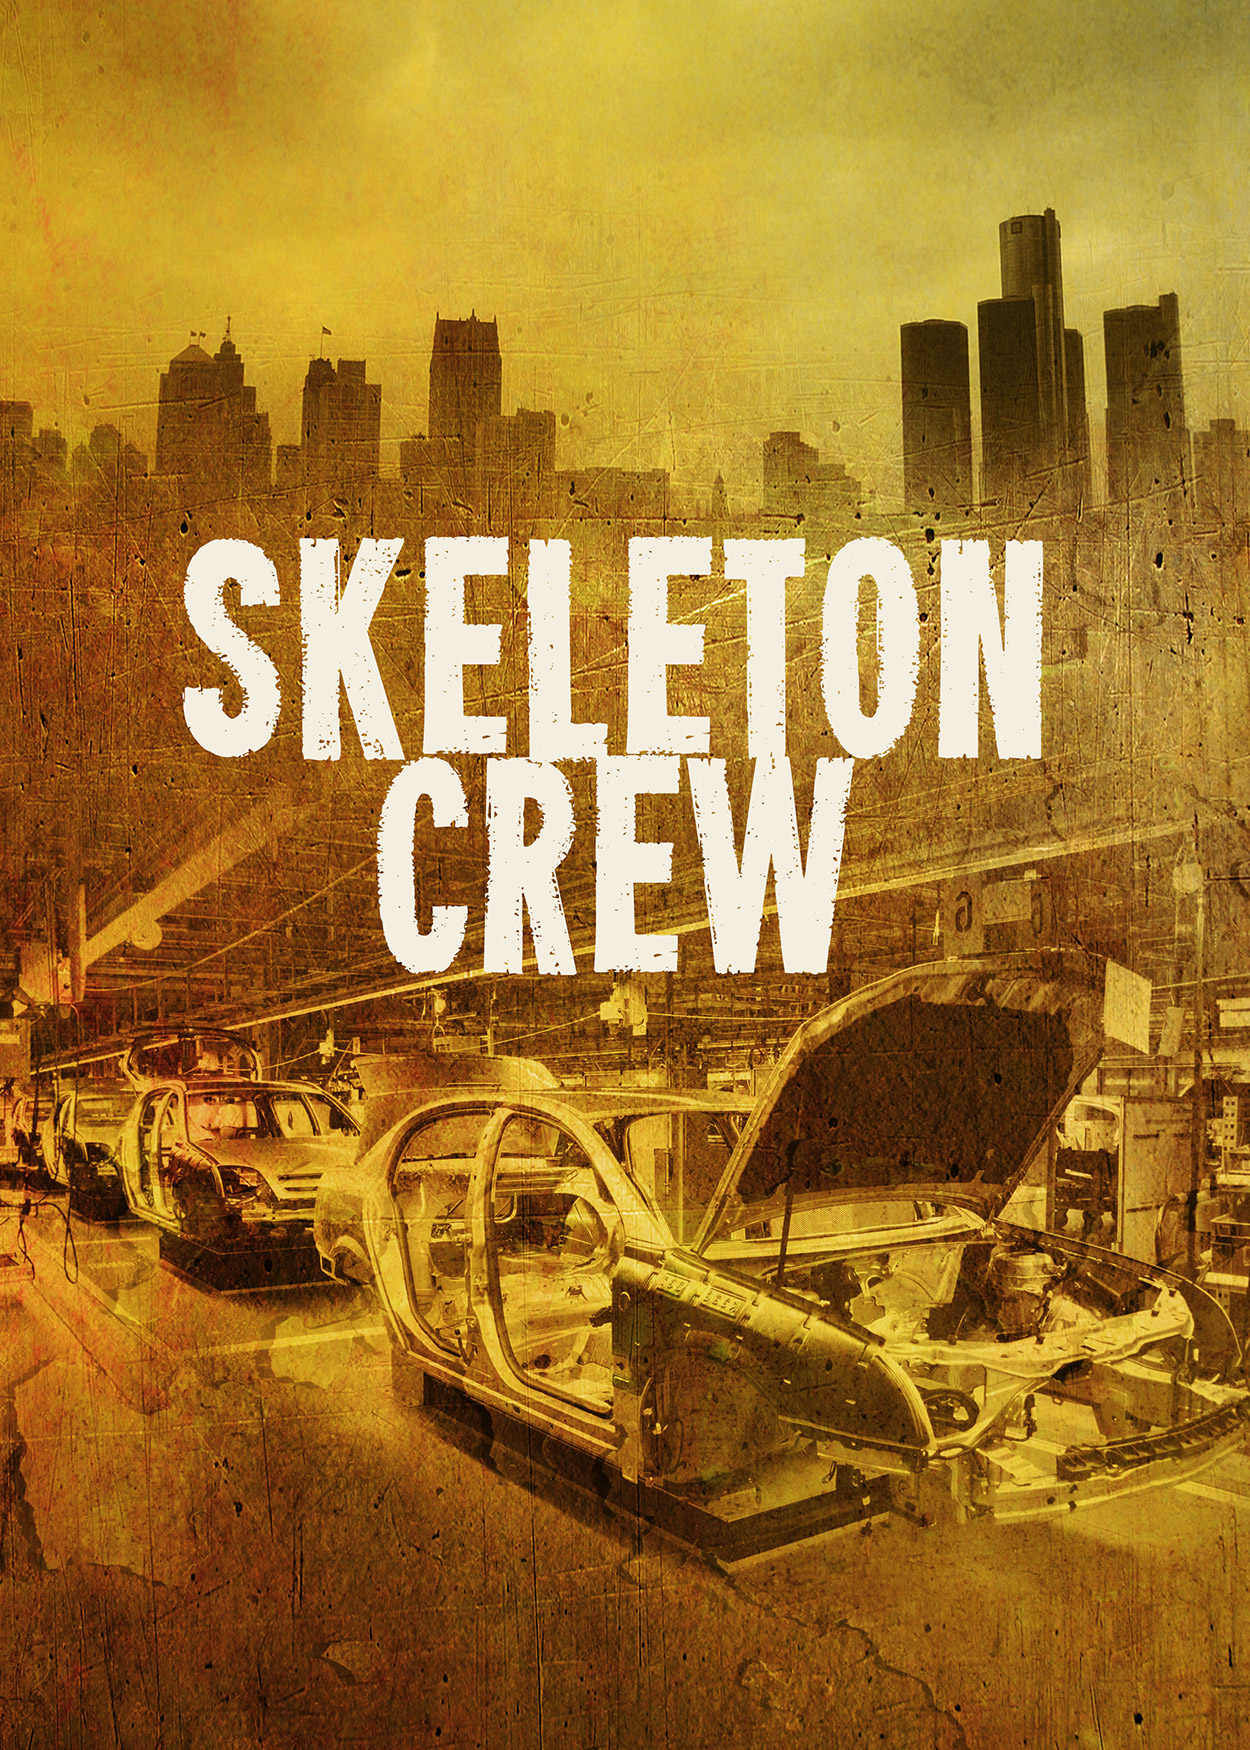 Key Art from Skeleton Crew (2017). A city skyline is silhouetted at the top of the image. At the bottom is an image of a car partially assembled on a factory assembly line.